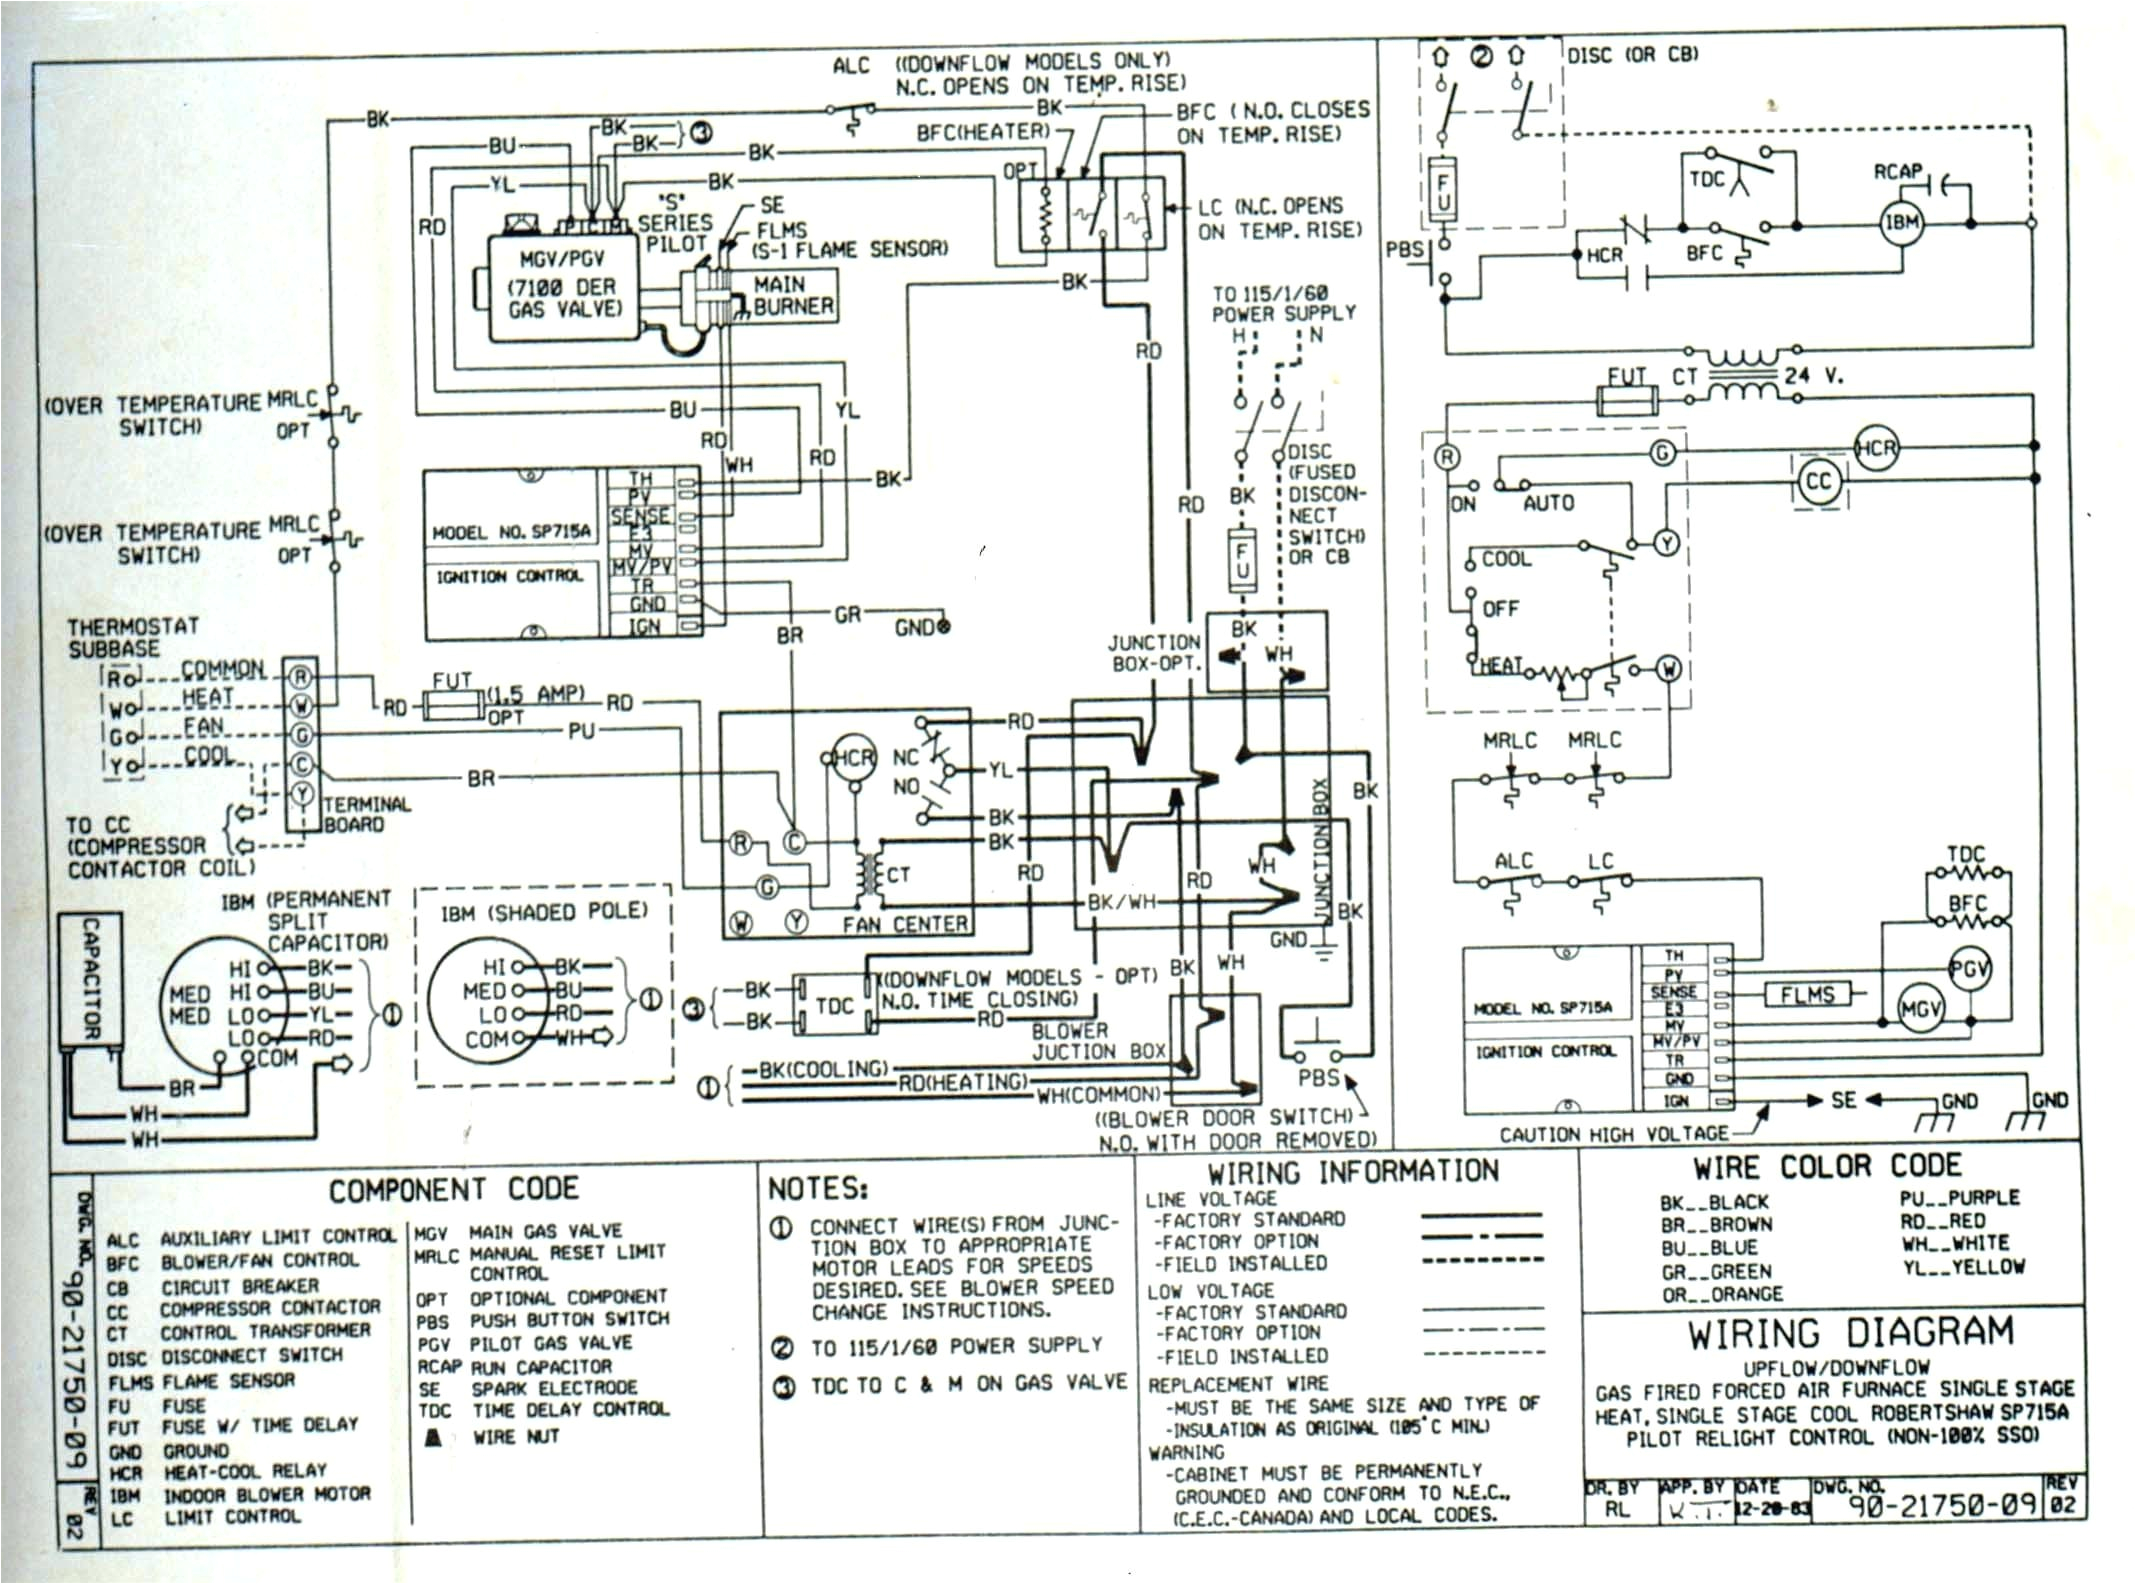 Wiring Diagram for Trane Air Conditioner Trane Rooftop Wiring Diagram Wiring Diagram Database